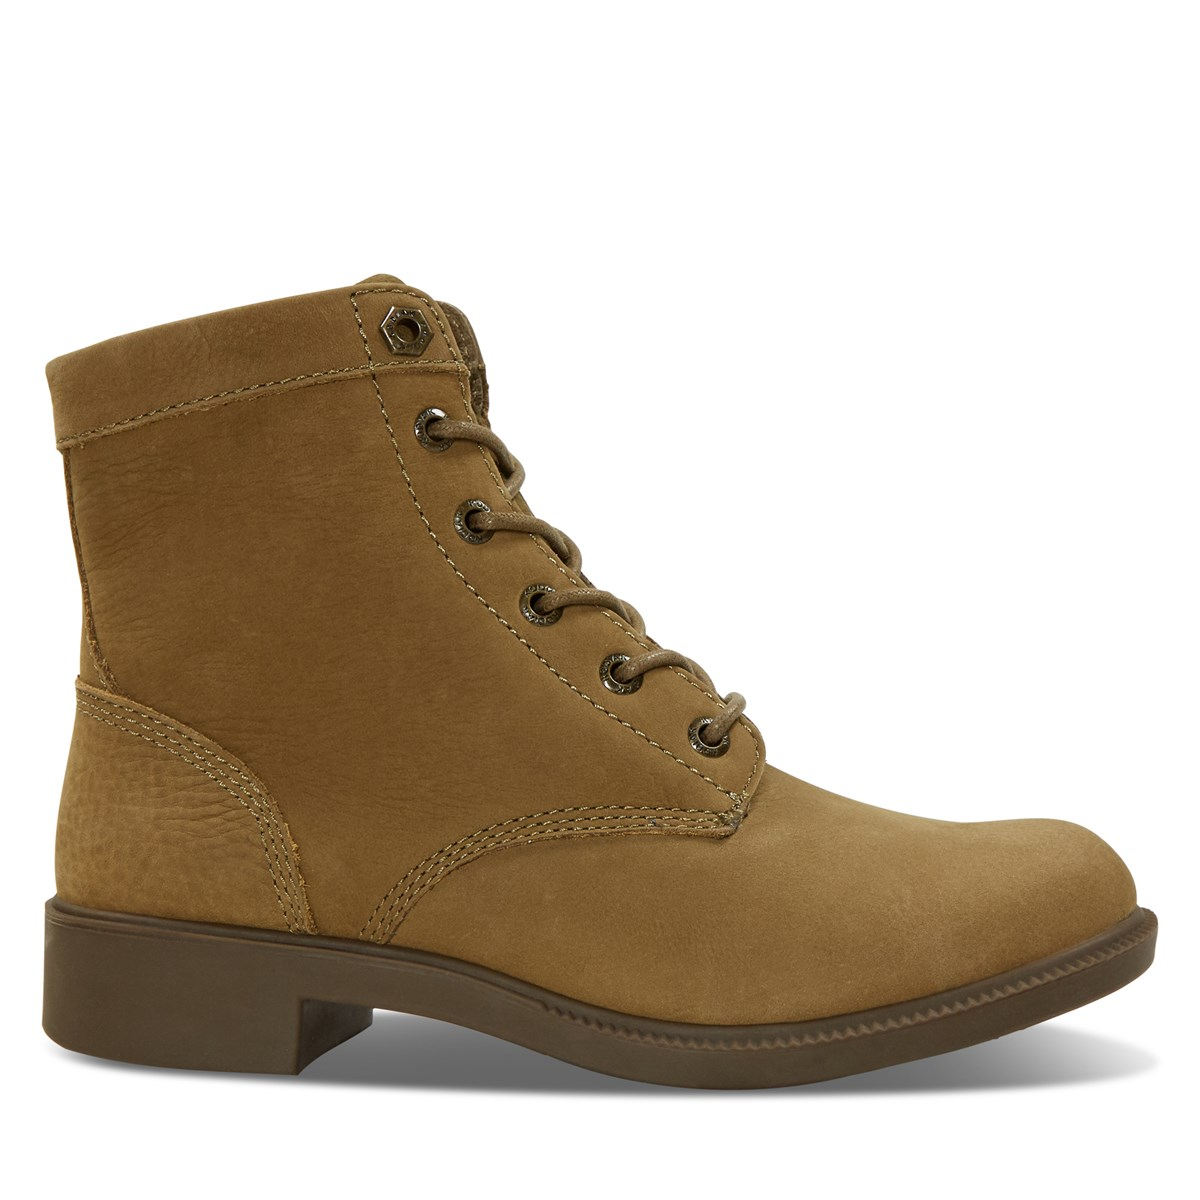 Women's Original Boots in Olive